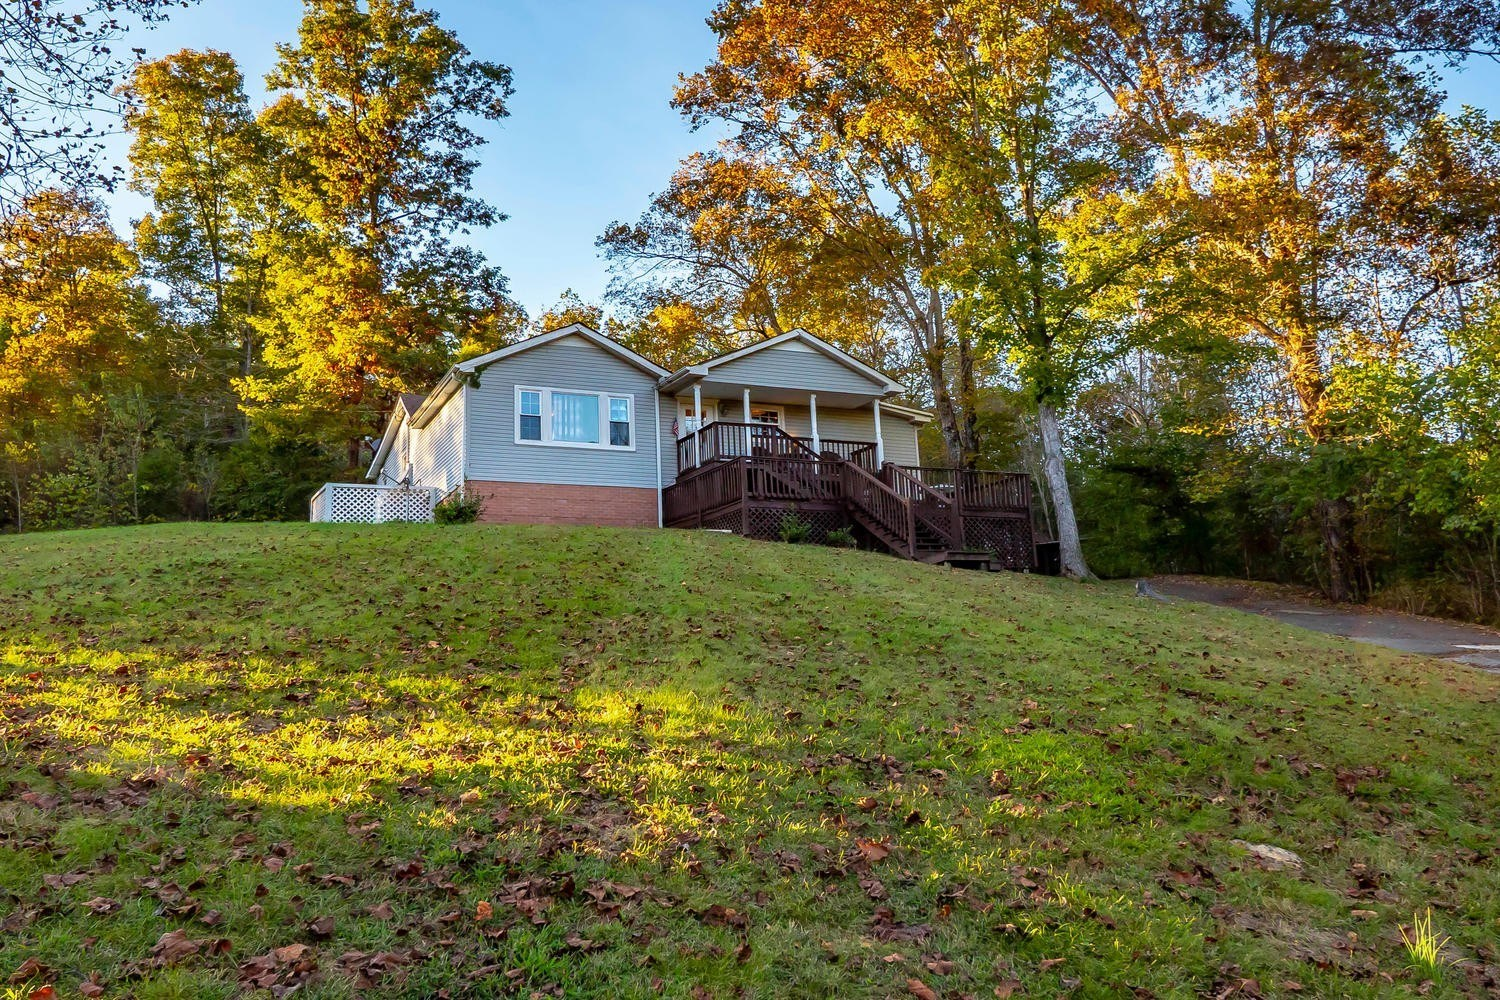 Home For Sale in Leipers Fork, TN!